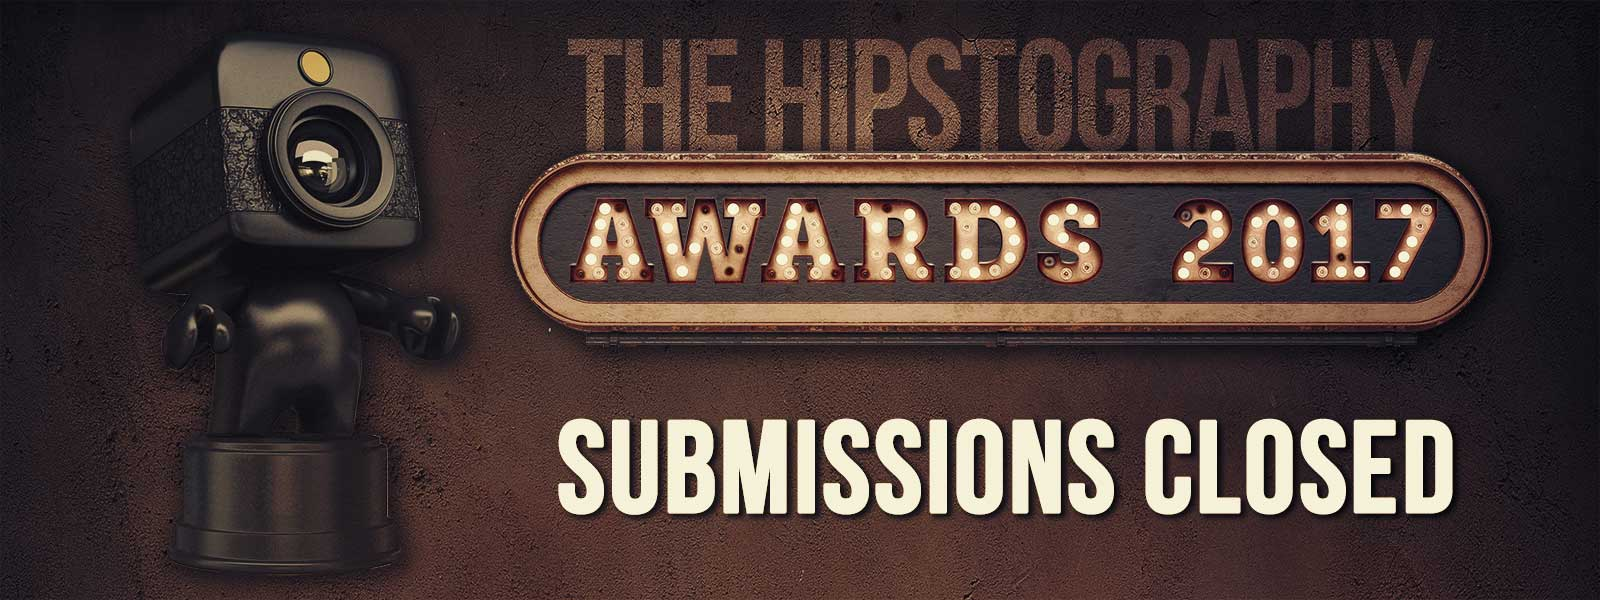 Awards-2017-Submissions-Closed-banner